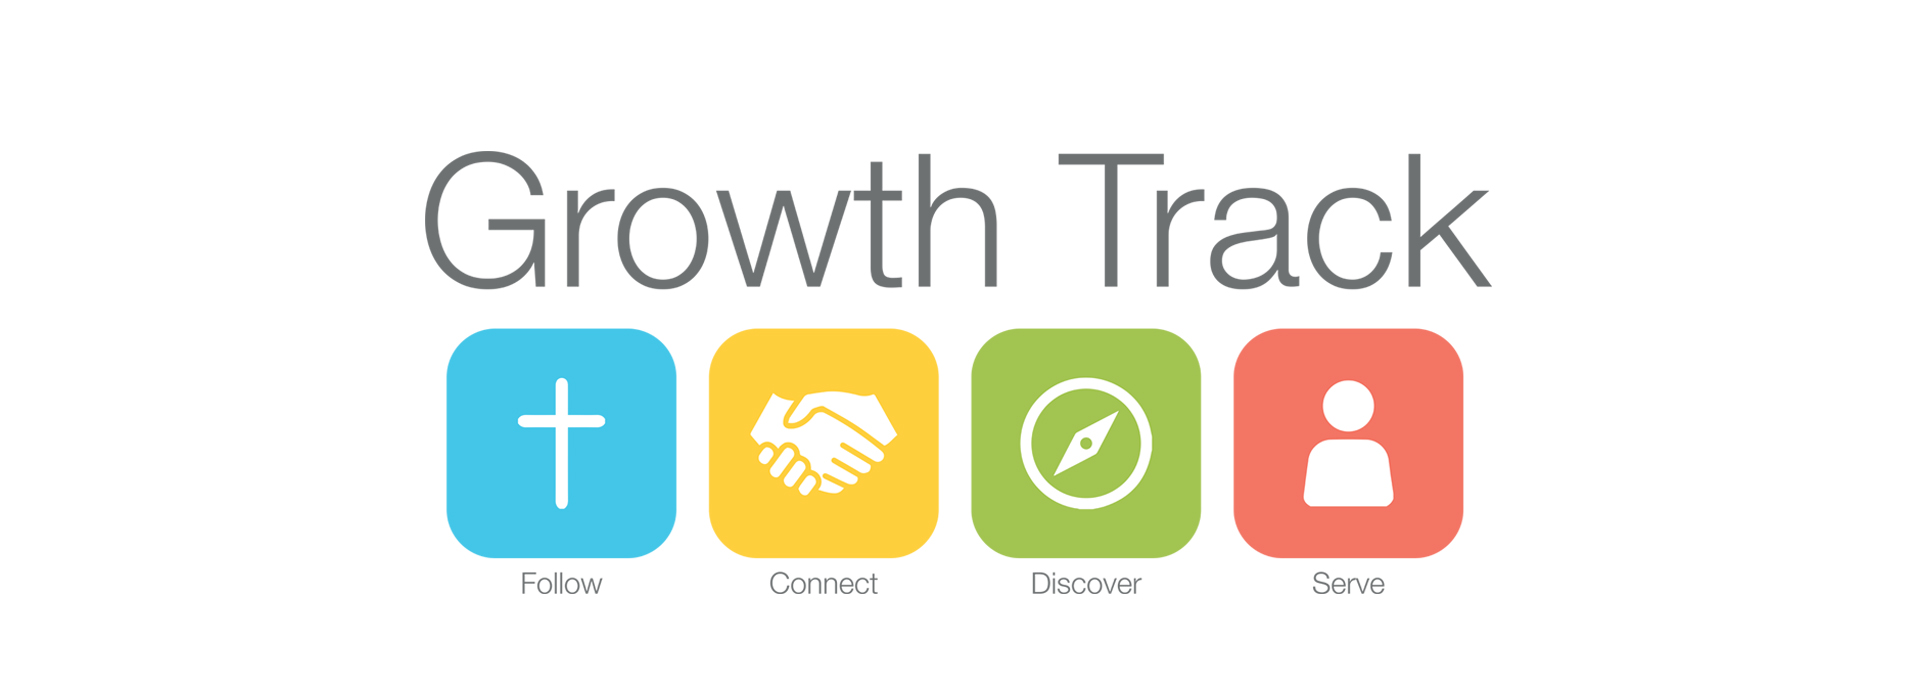 GrowthTrack_WebBanner1